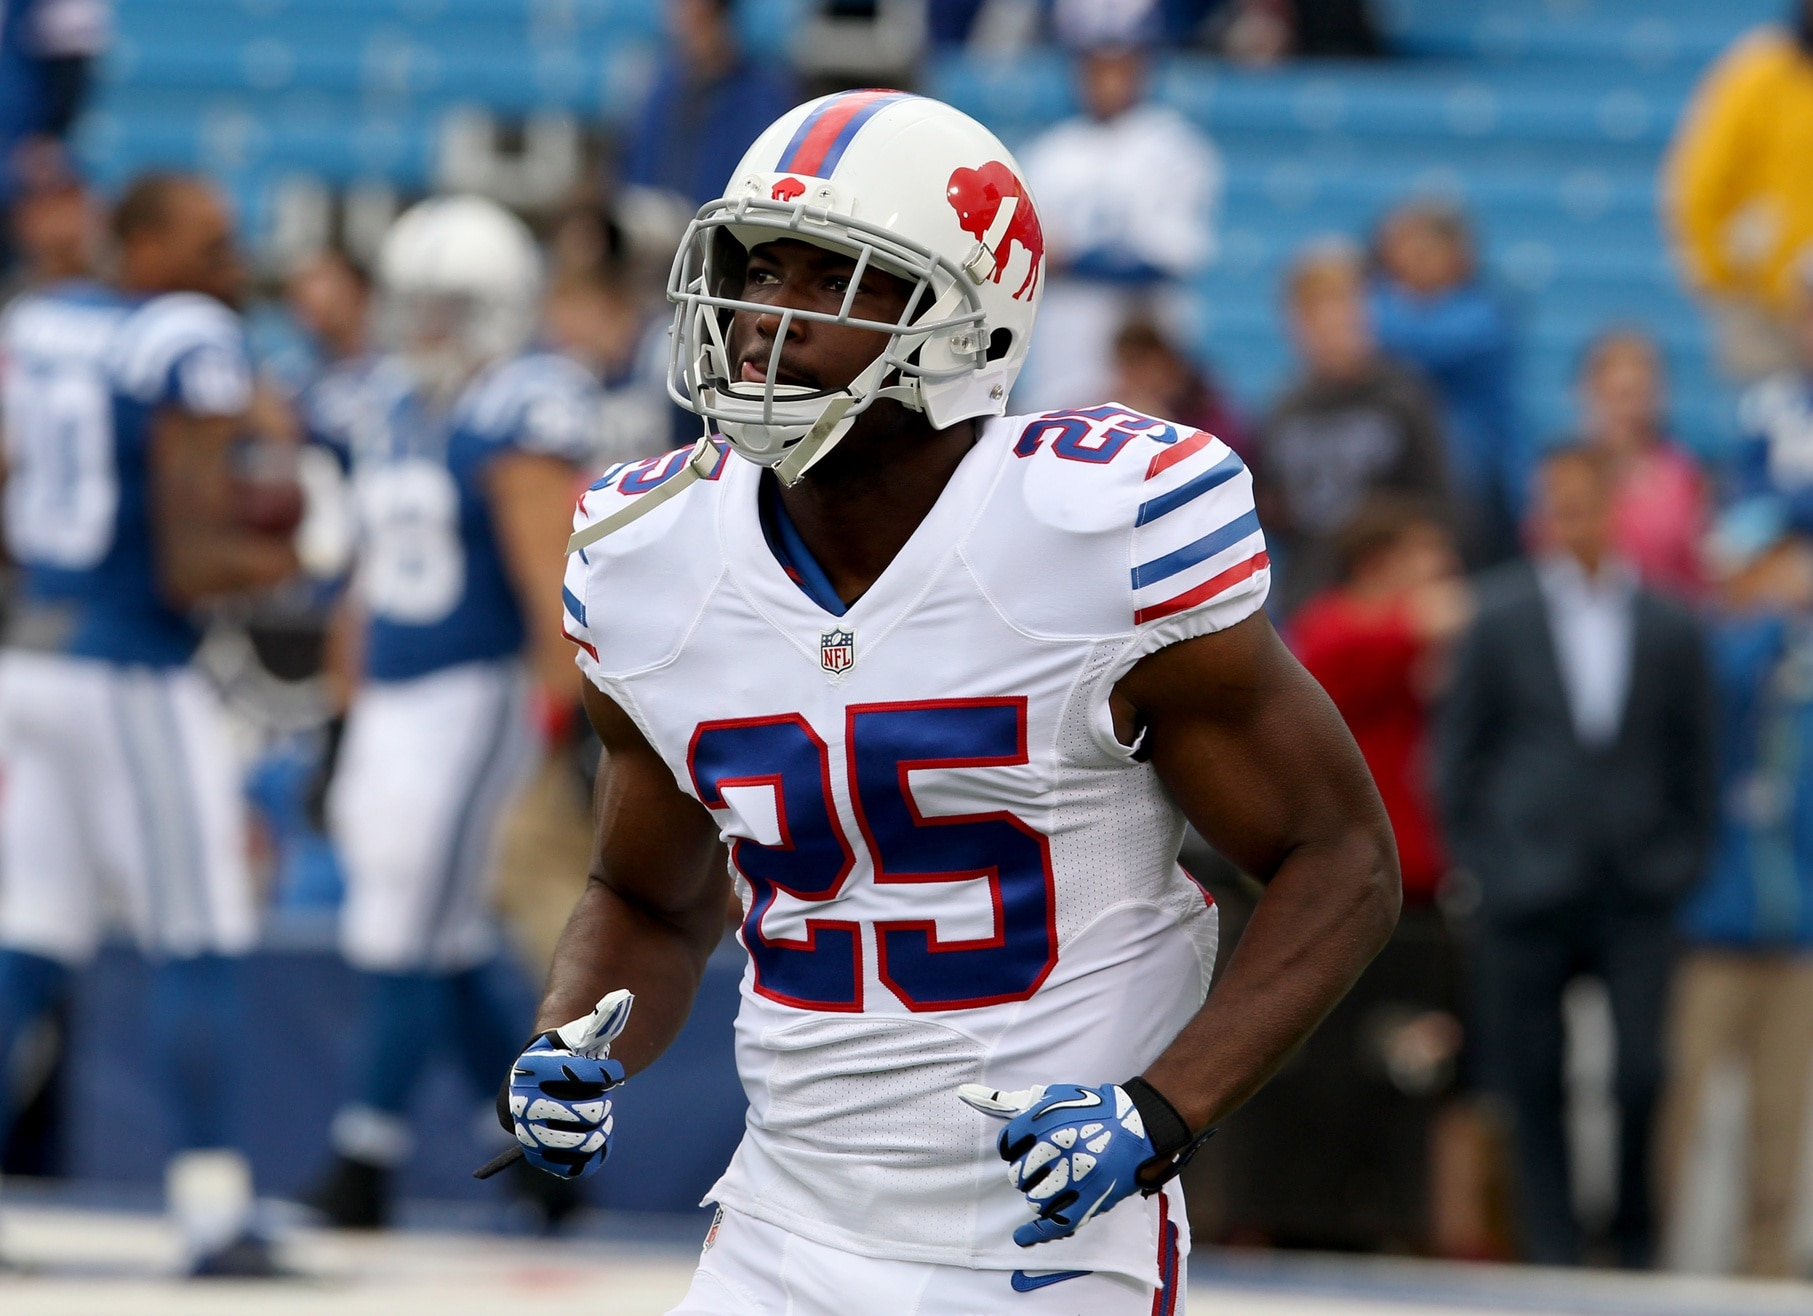 LeSean McCoy Jets beat us down in loss